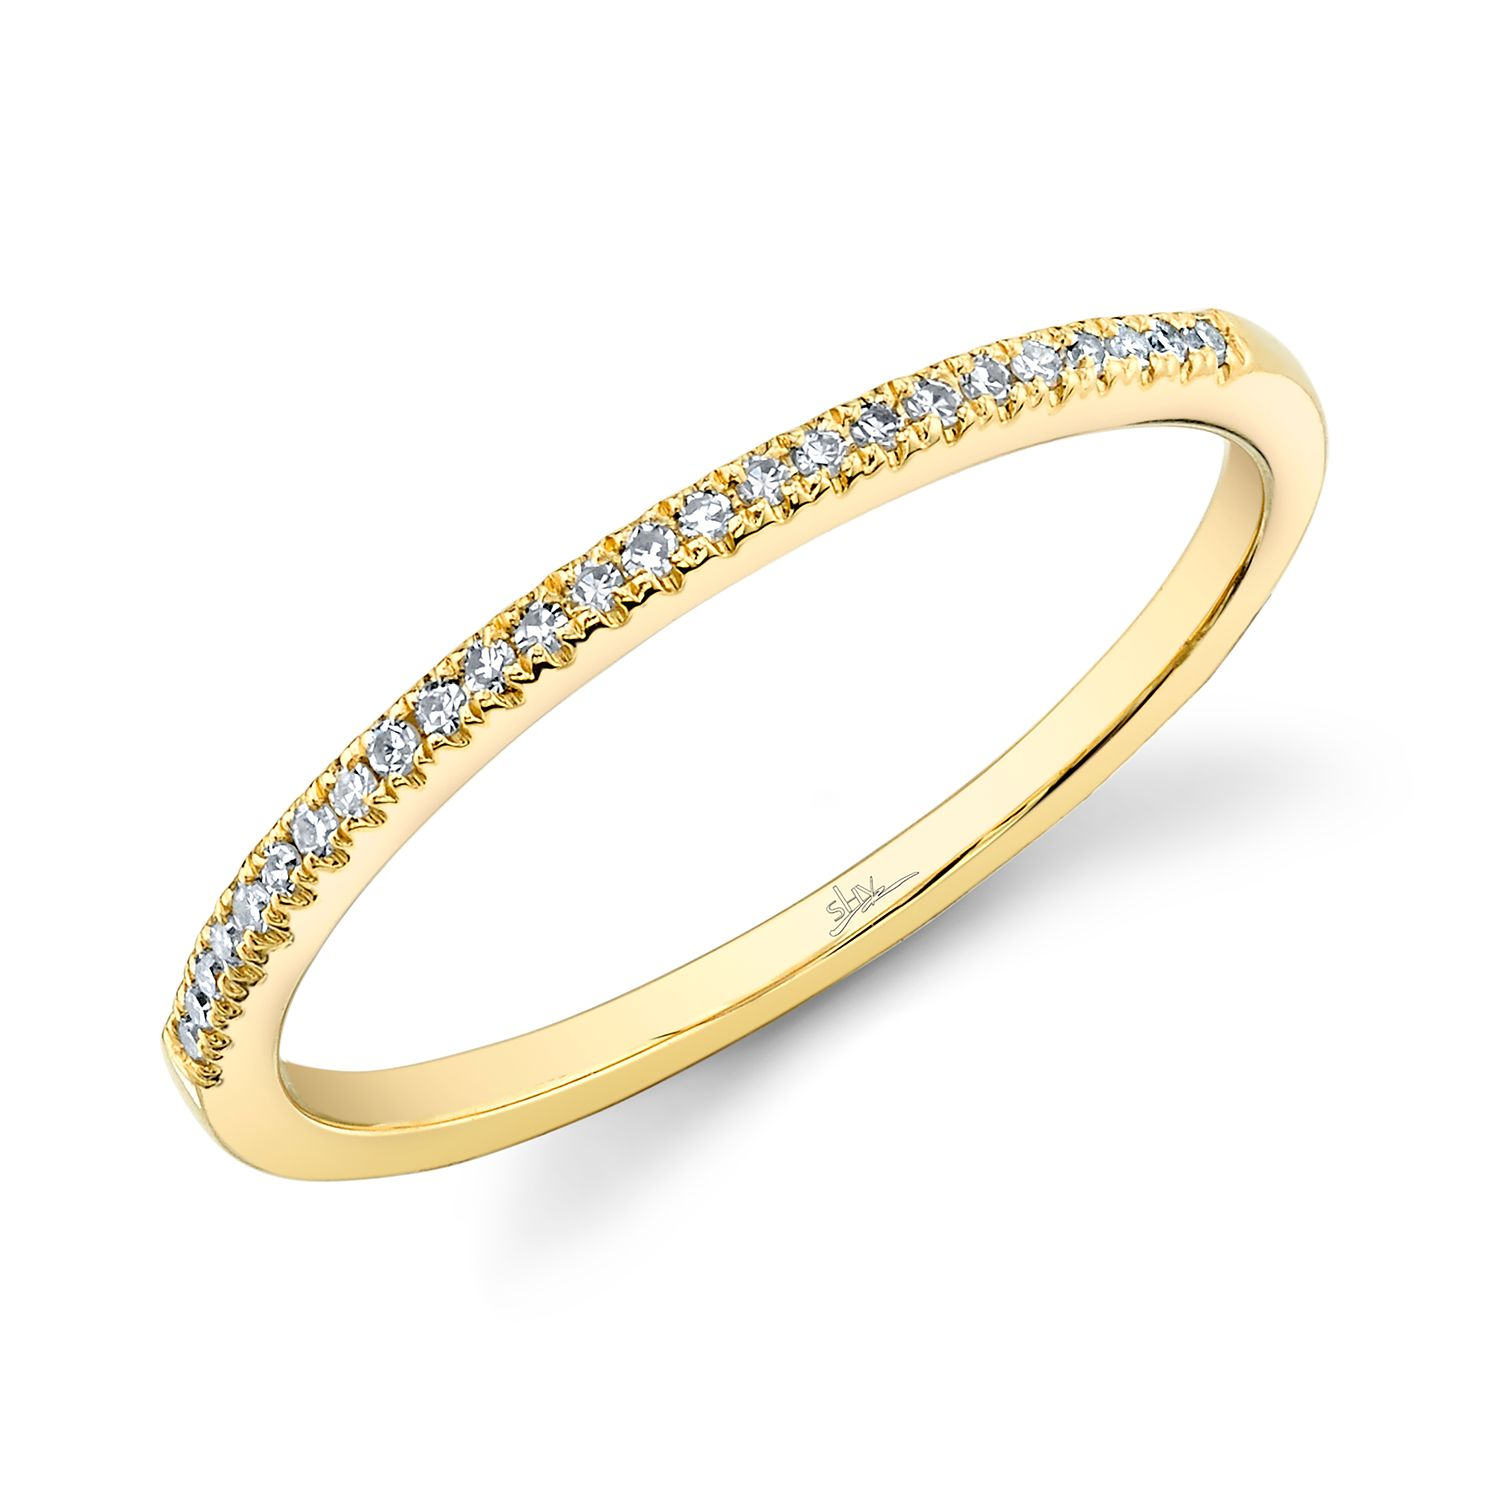 Shy Creation Kate 14ct Yellow Gold Pavé-Set Diamond Ring - Product number 1178148